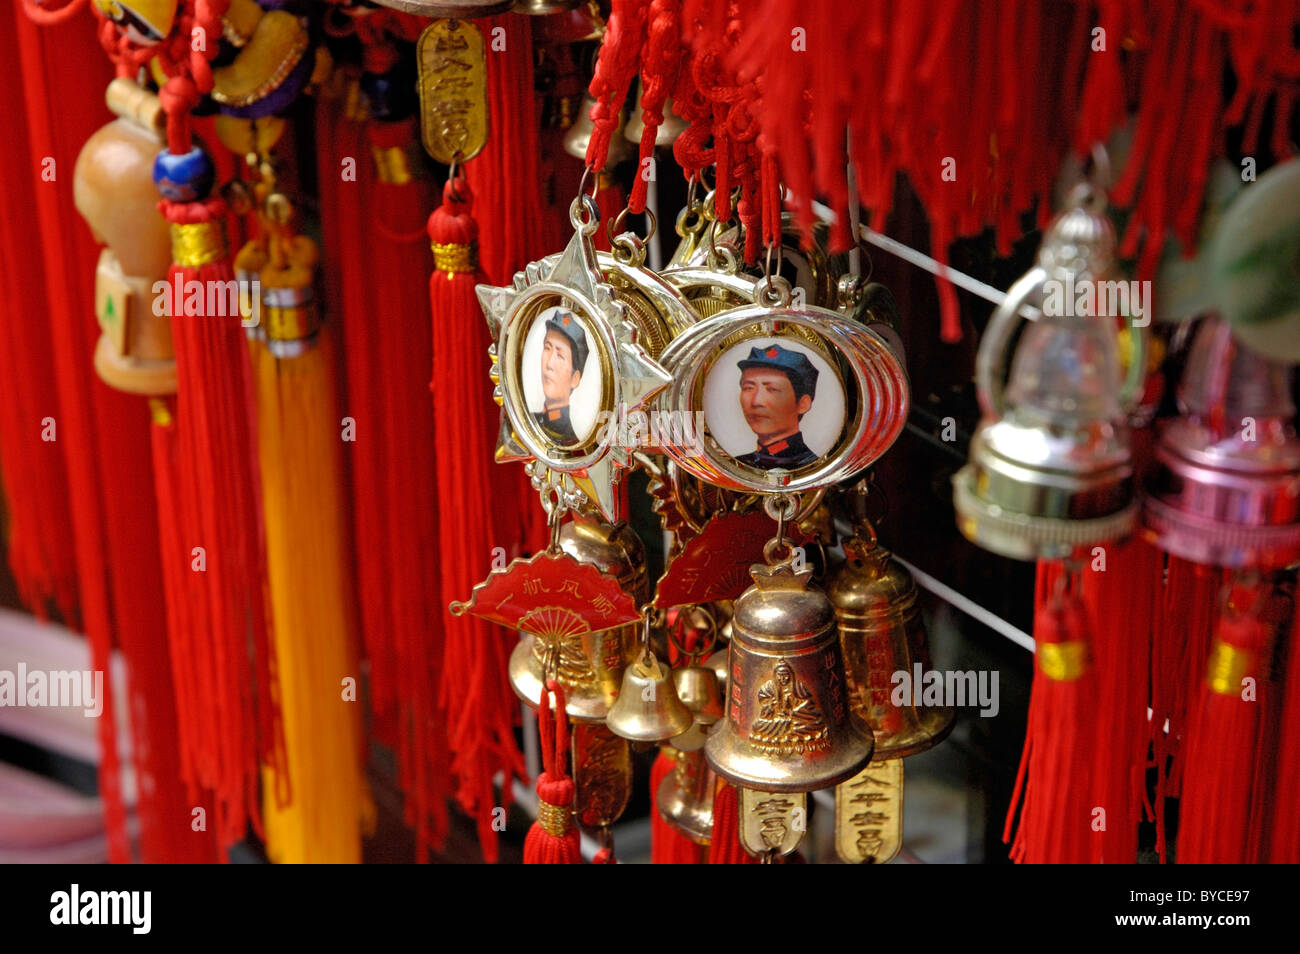 Souvenirs Chia - Mao Zedong / Mao Tse-tung medals hanging in a souvenir stall outside Behai Park, Beijing, China. - Stock Image